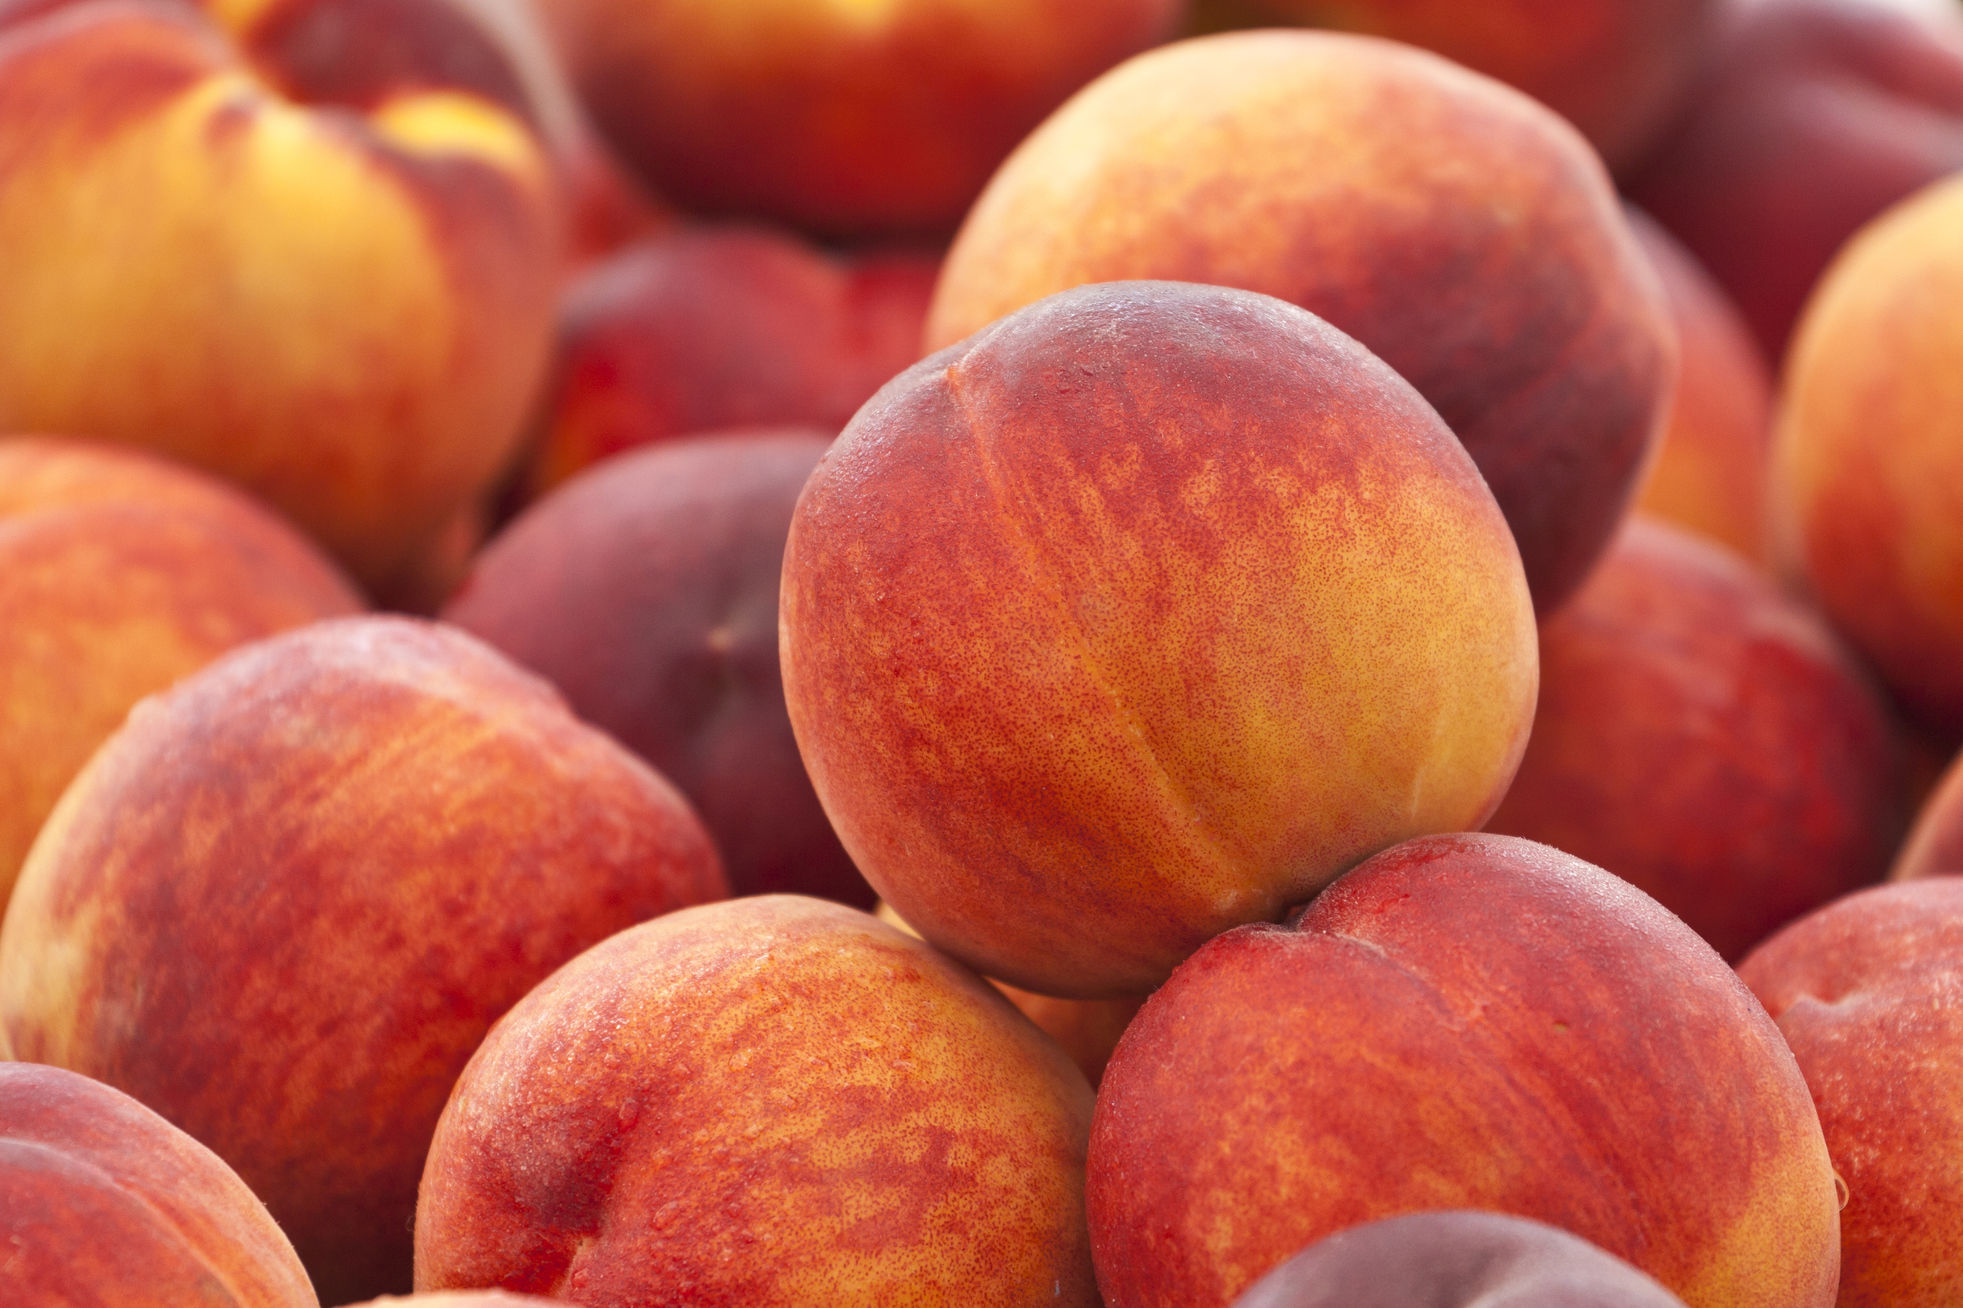 Southern-Favorite Peaches Could Have Cancer-Fighting Benefits, Study Suggests